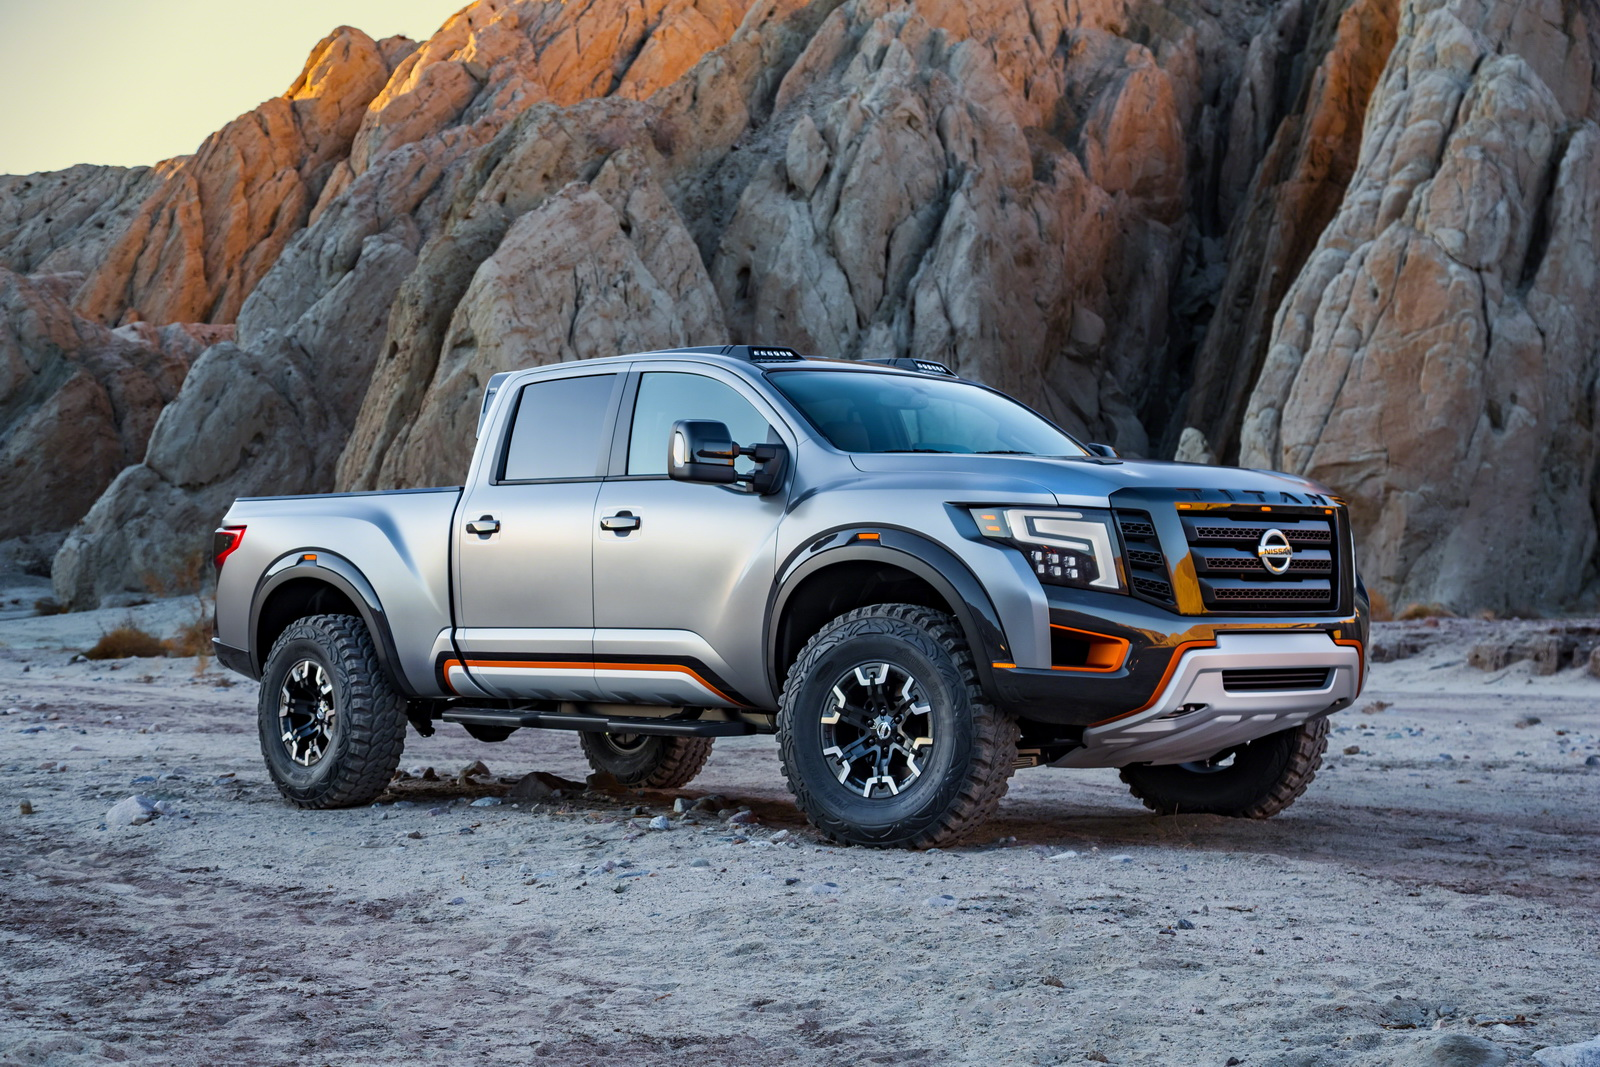 Nissan s titan warrior concept is proof we need more baja inspired trucks